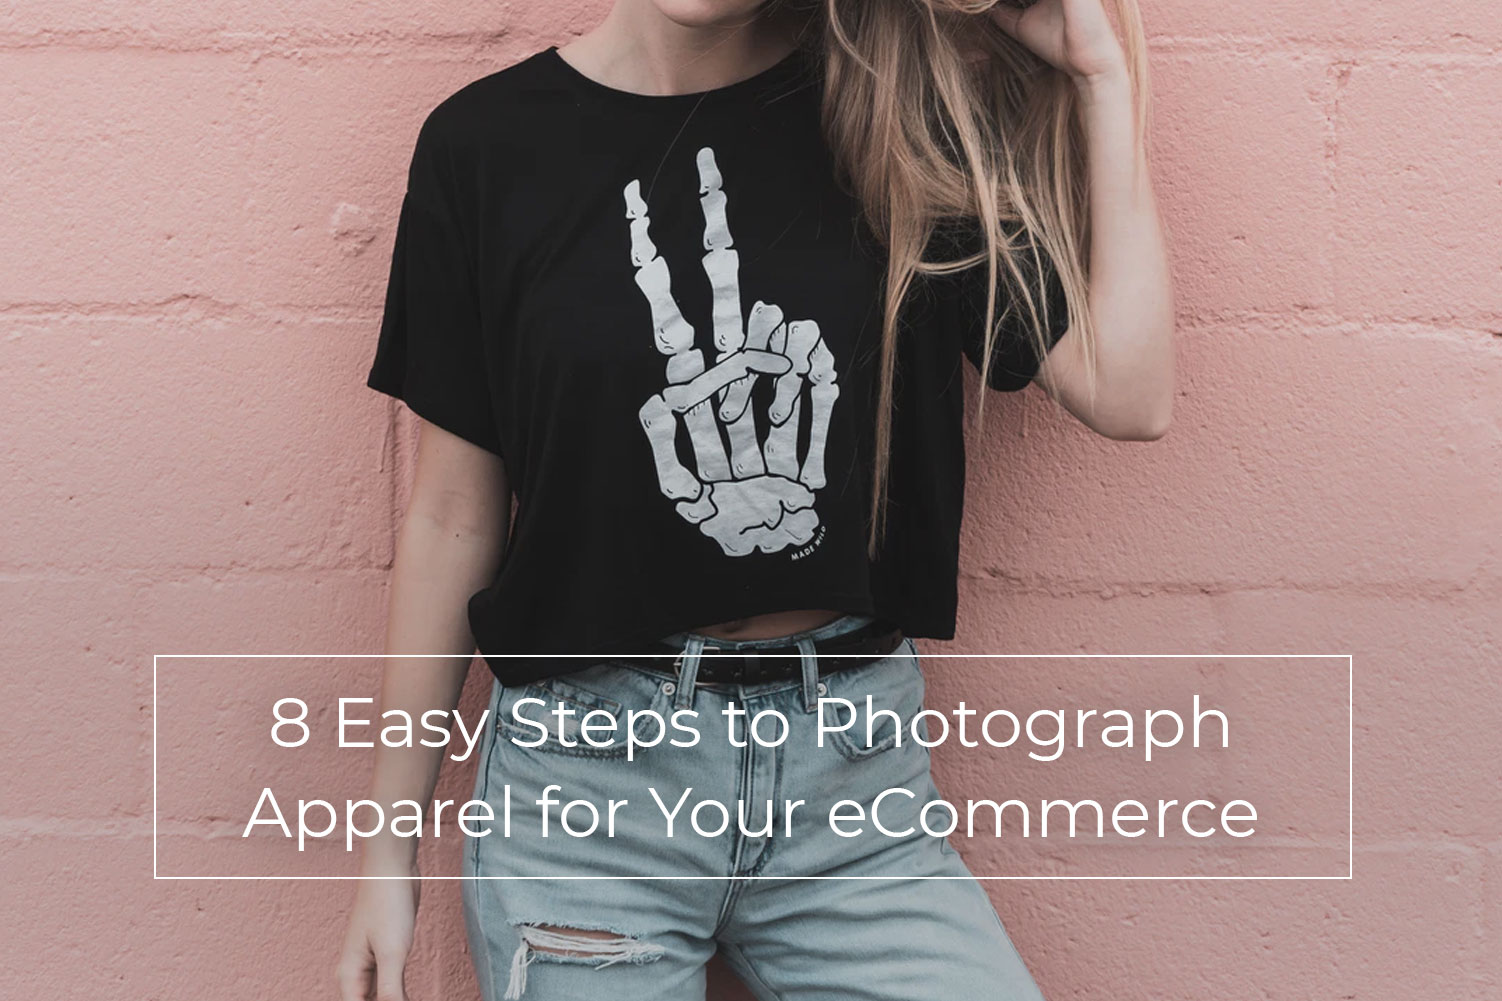 apparel product image editing photography tips